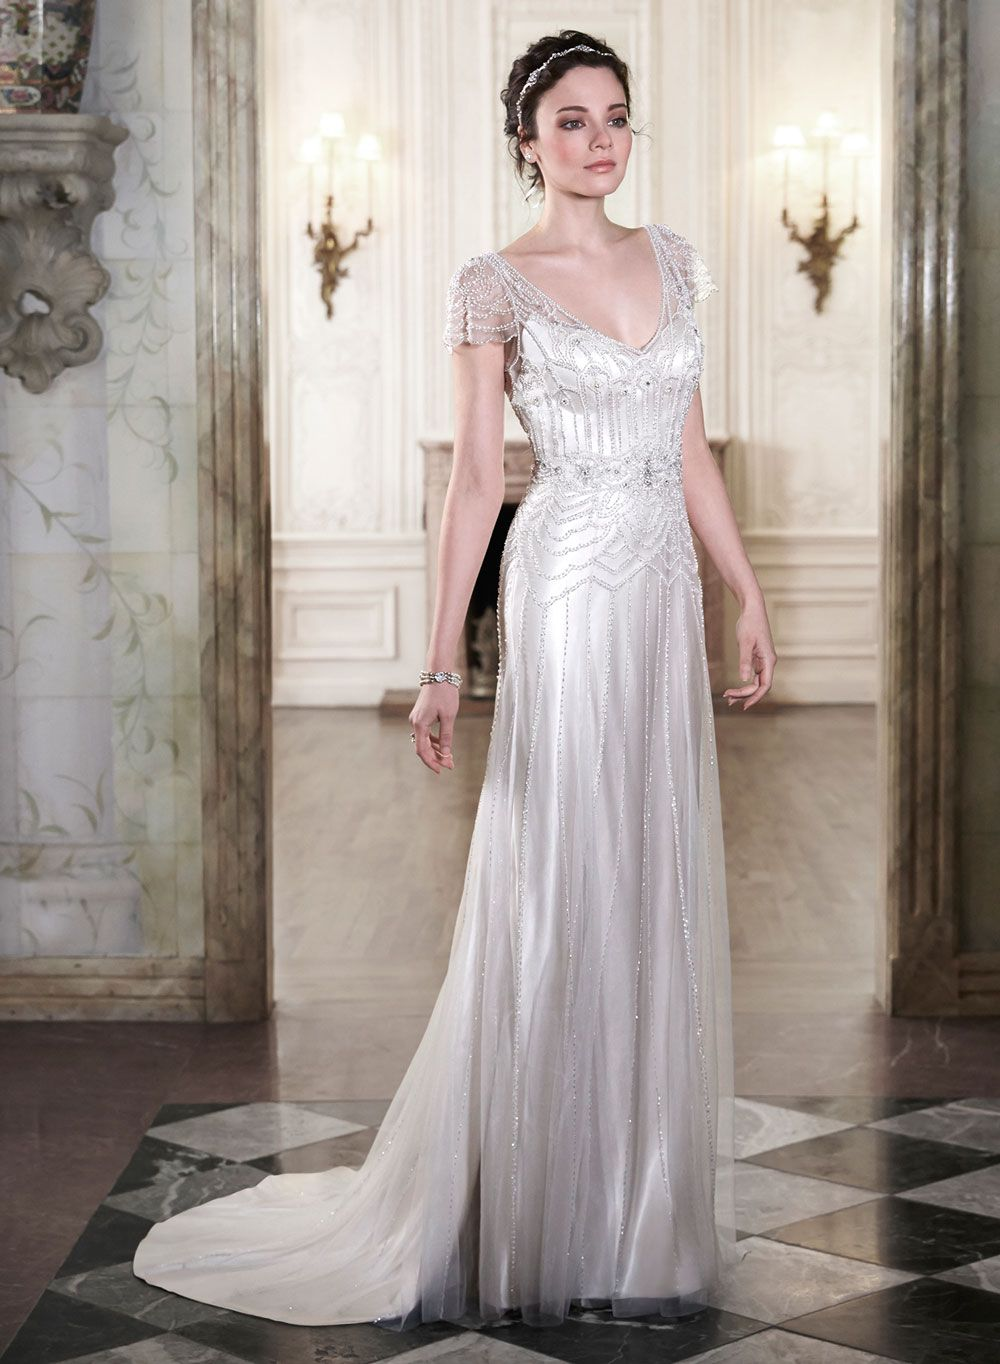 20s style wedding dress s Wedding Dresses Add Some Gatsby Glamour to Your Big Day